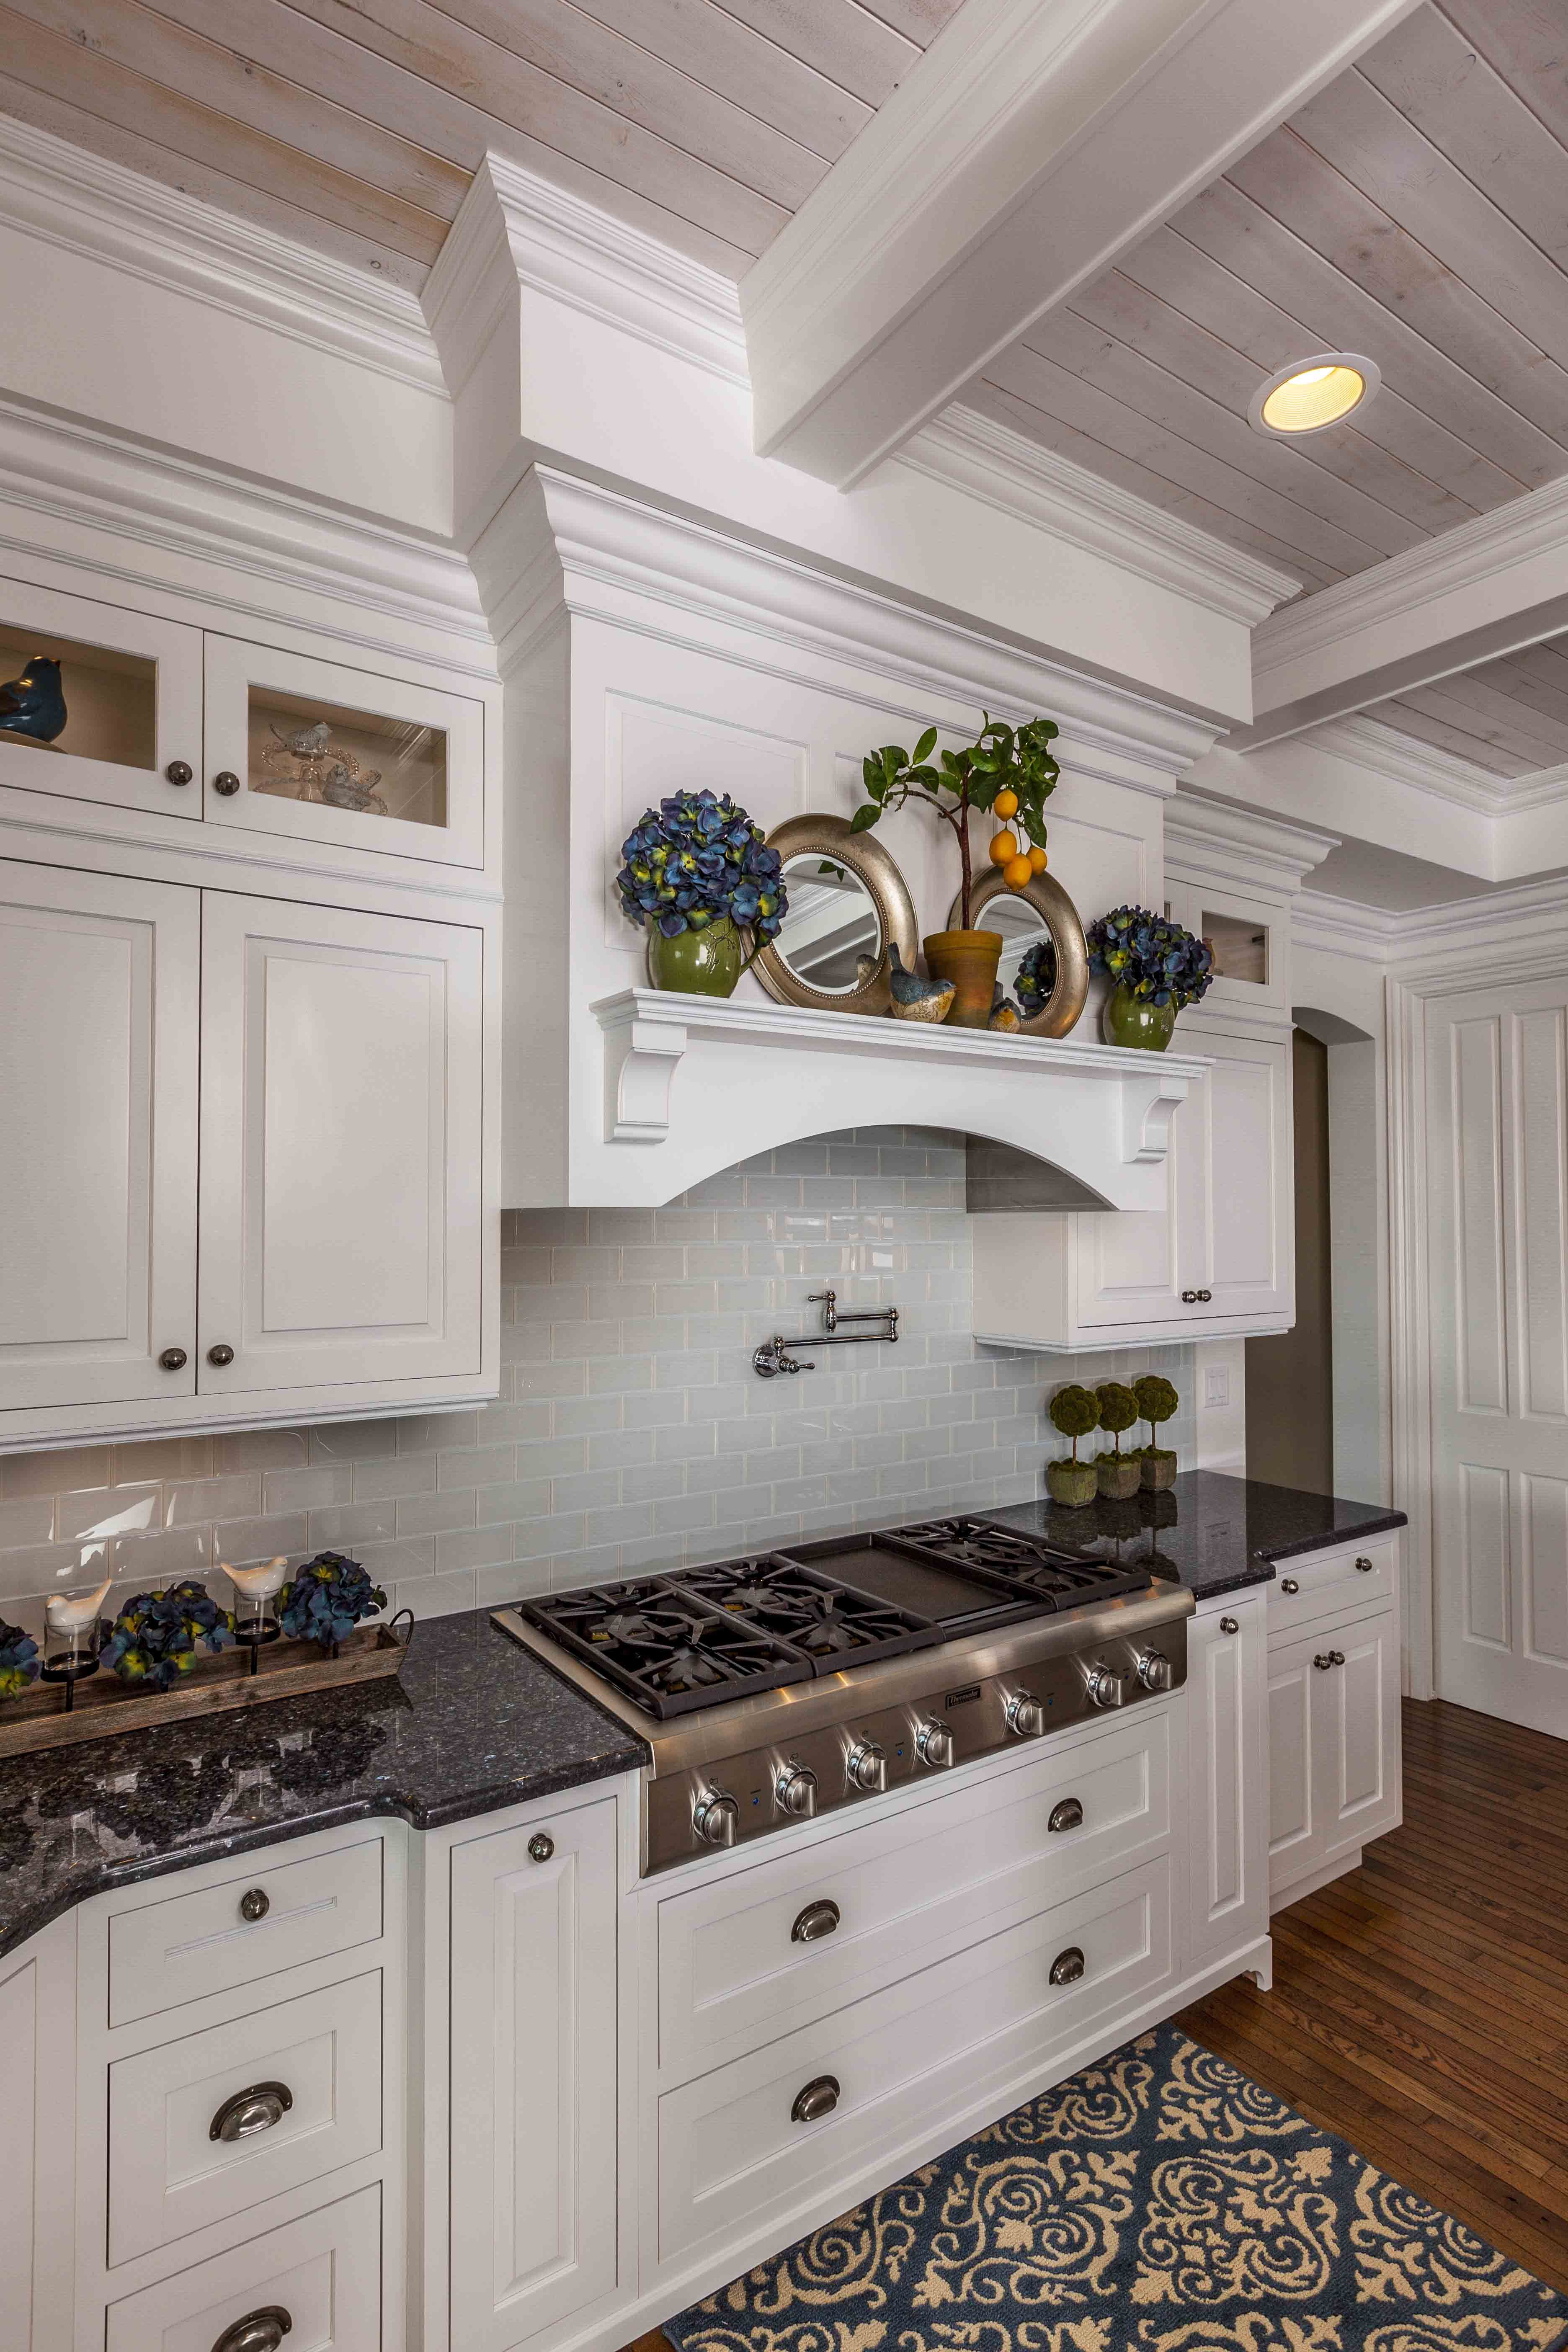 Country Classic Door Style Finished In Designer White Paint Designed By Darryl Vaughn Ki Kitchen Cabinet Door Styles Rustic Kitchen Kitchen Cabinet Styles